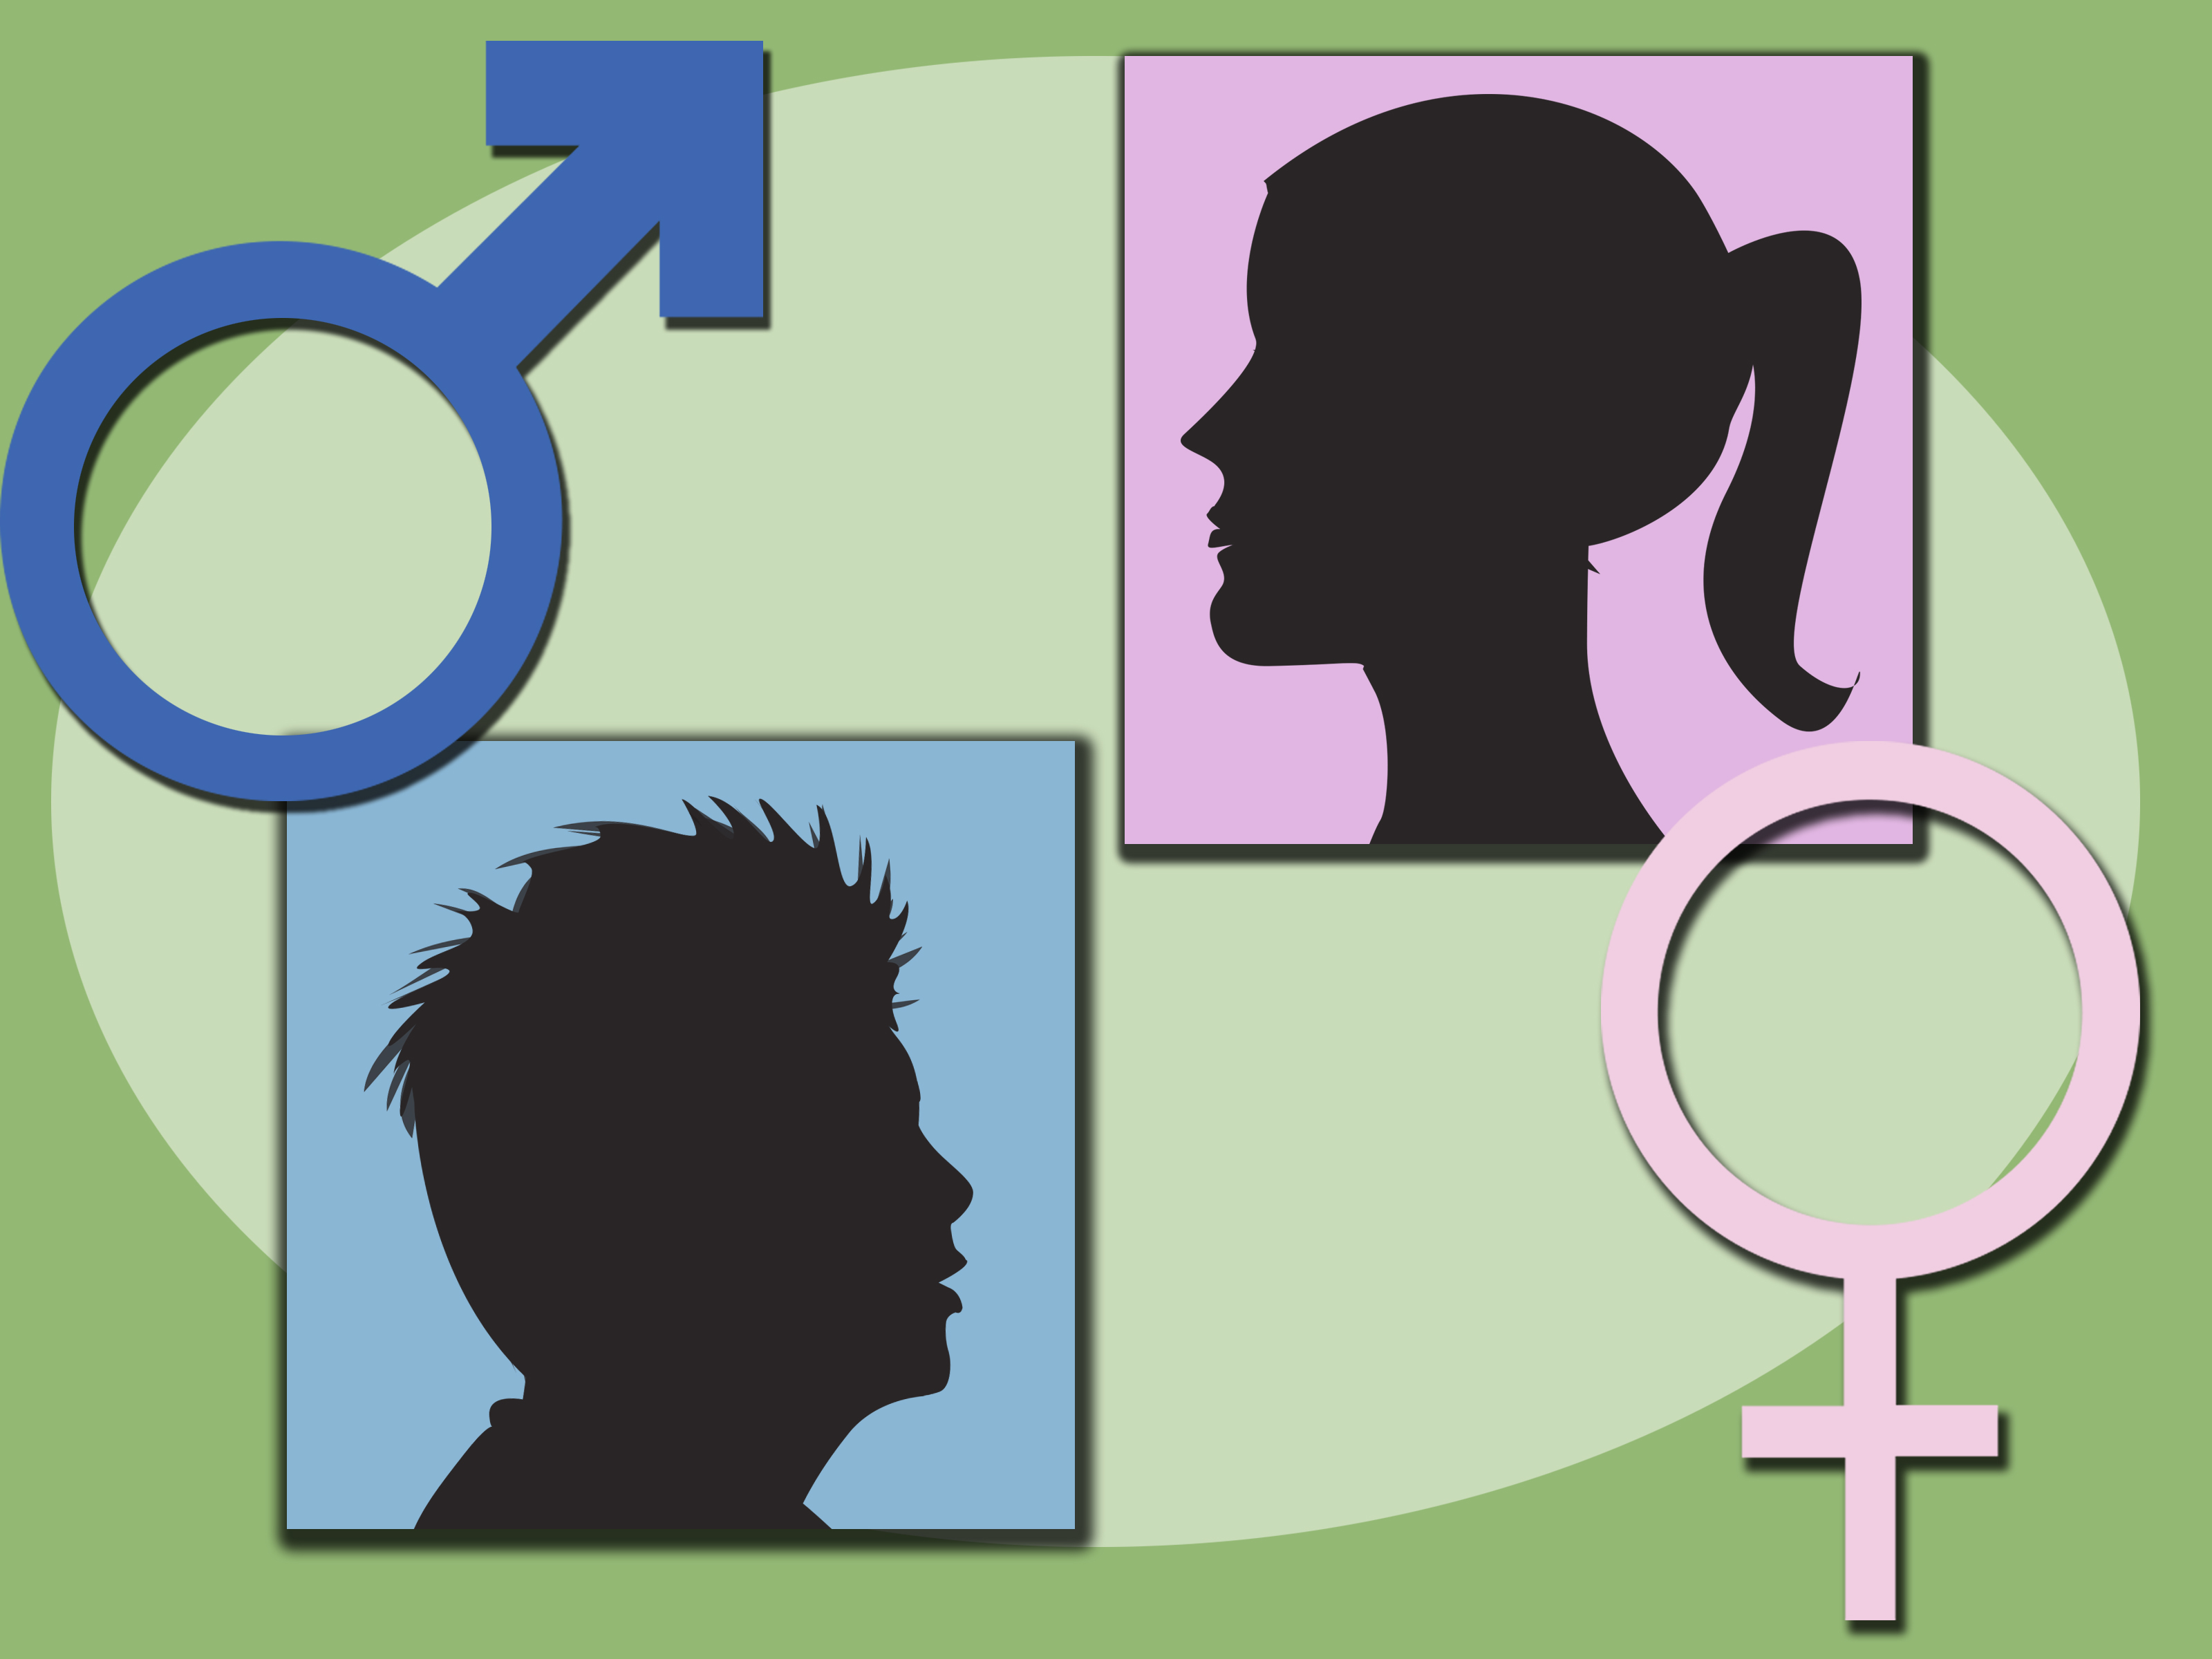 gender and sex similarities and differences in Arizona